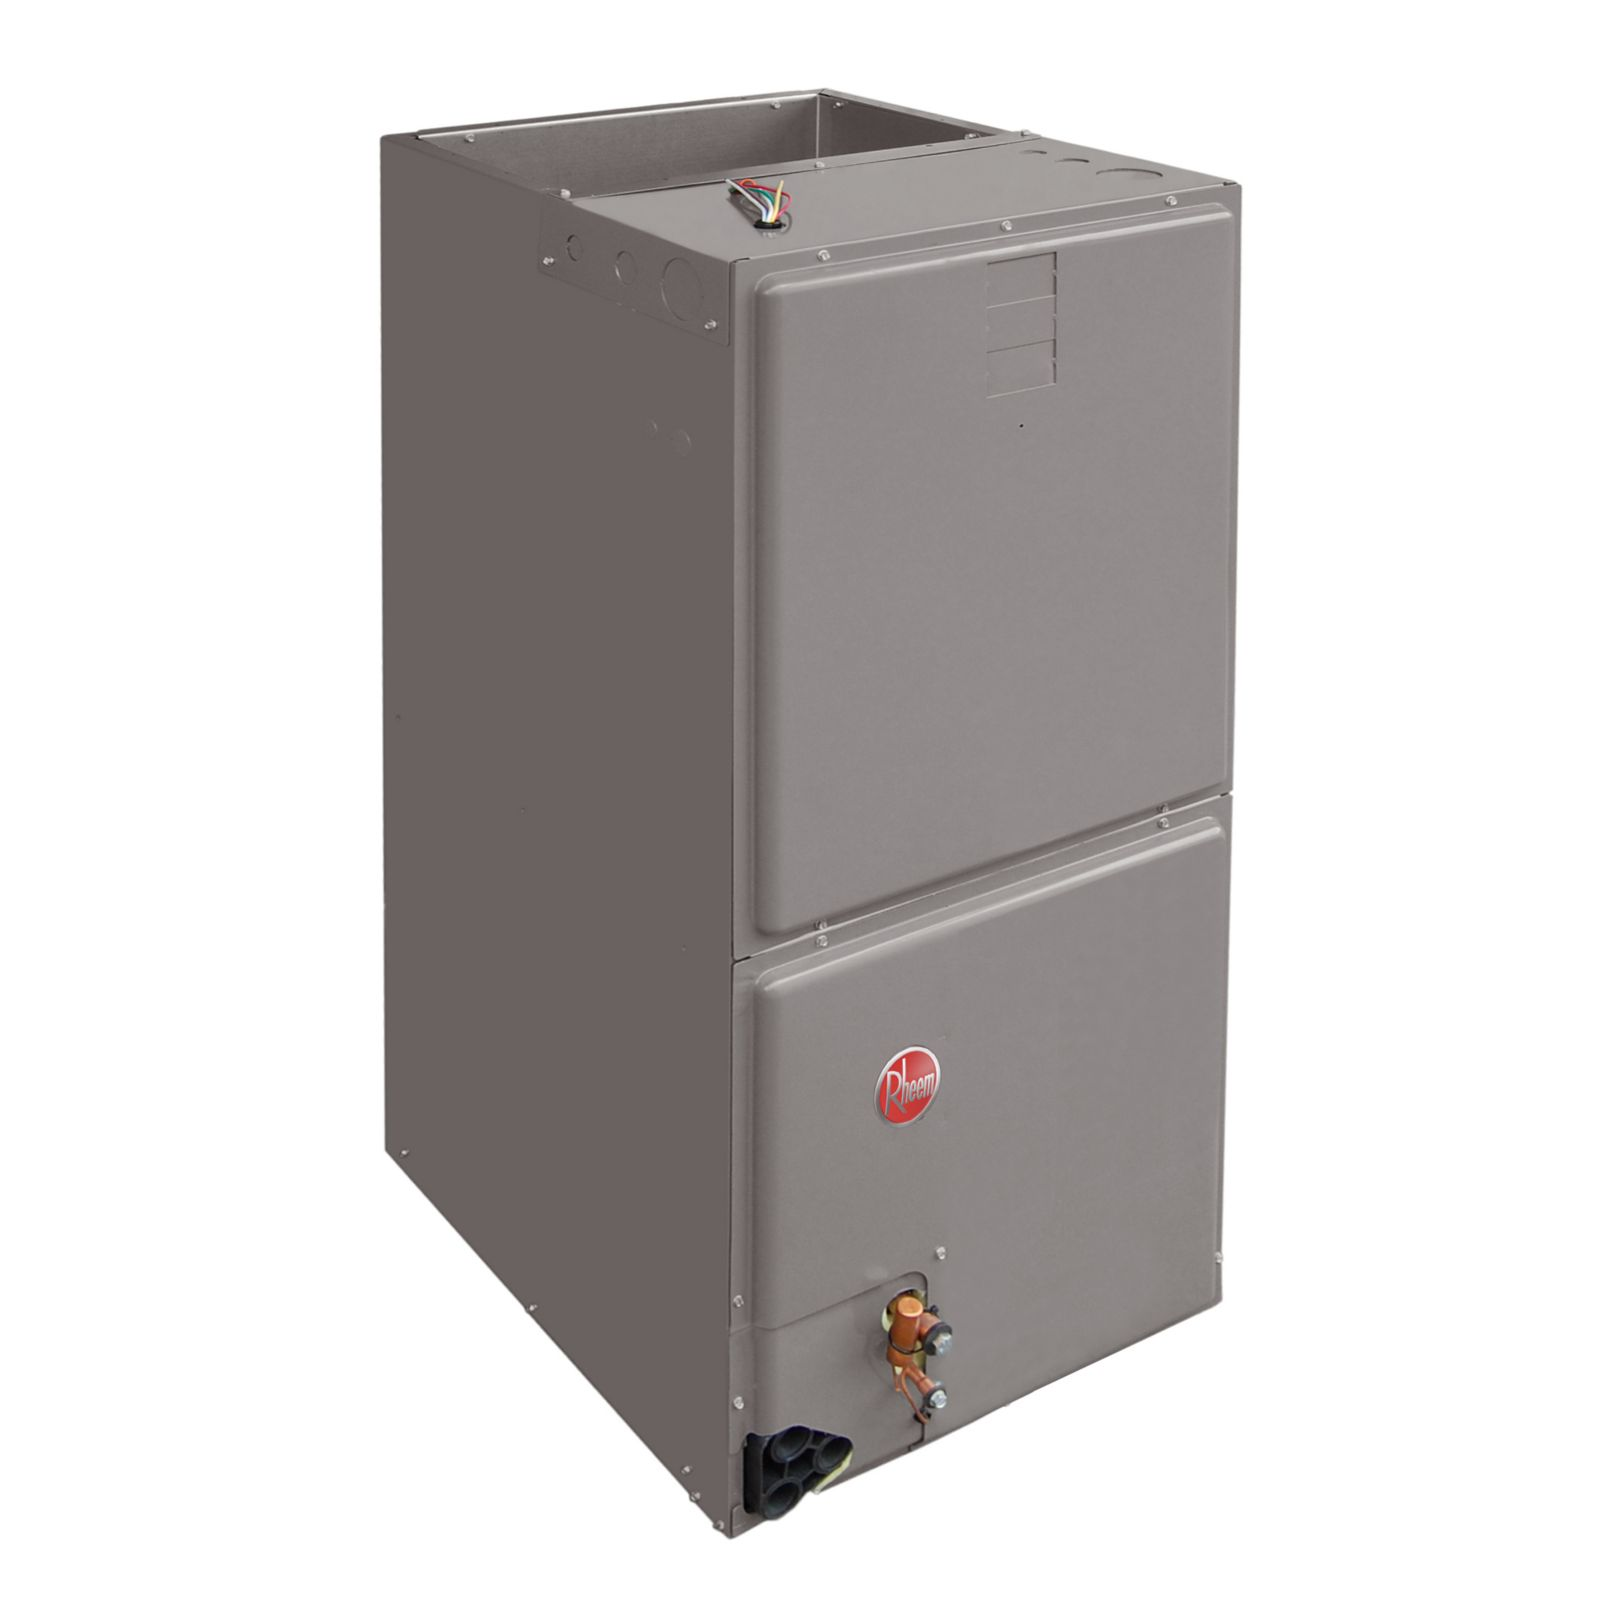 "Rheem RH1T6021STANJA - 5 Ton Air Handler, 21"" Wide, Constant Torque Motor, Single-Stage Airflow, Aluminum Coil 208/240/1/60"